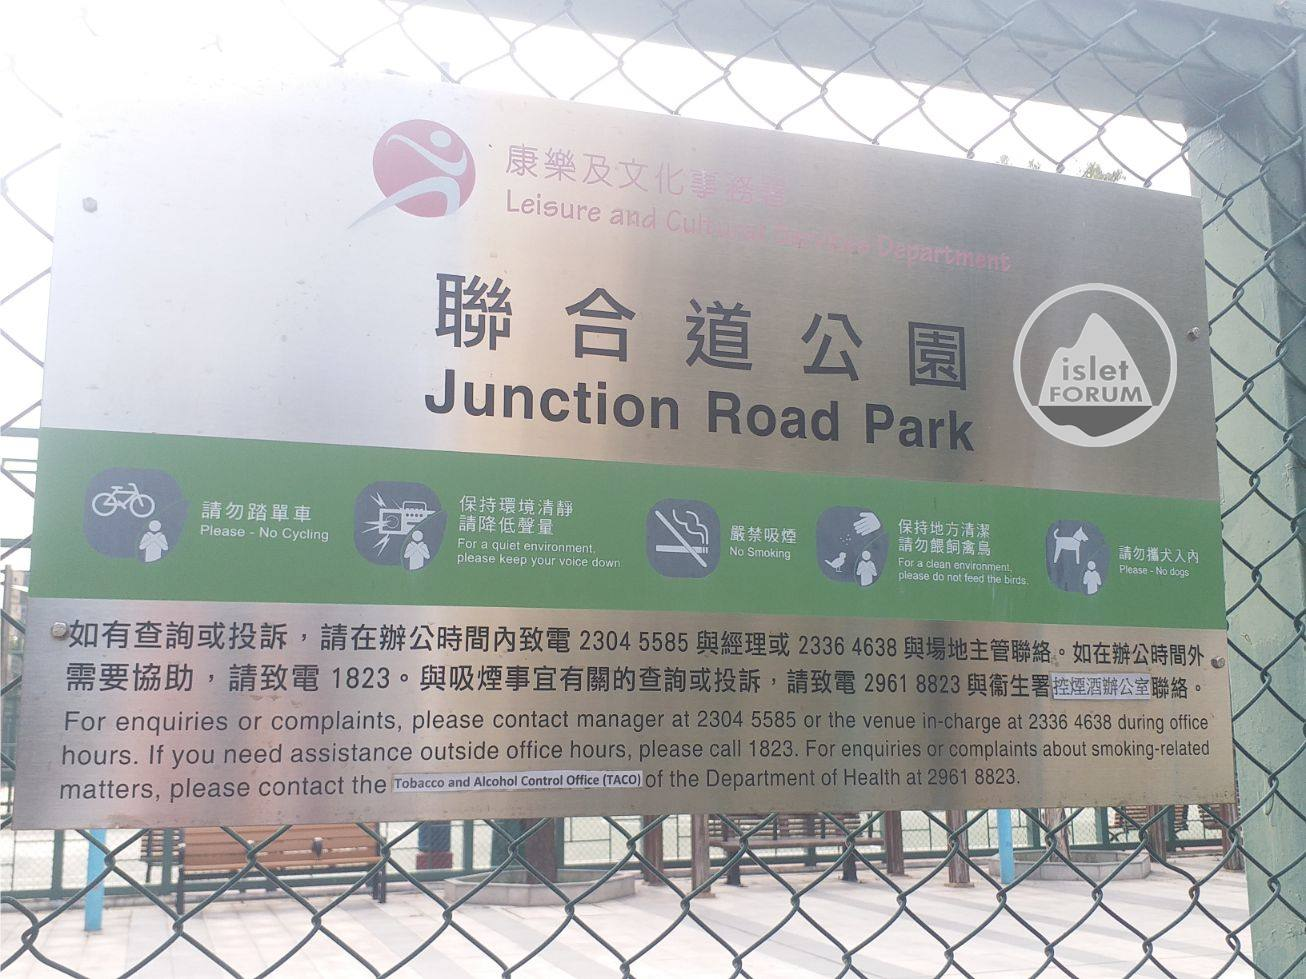 聯合道公園junction road park (3).jpg